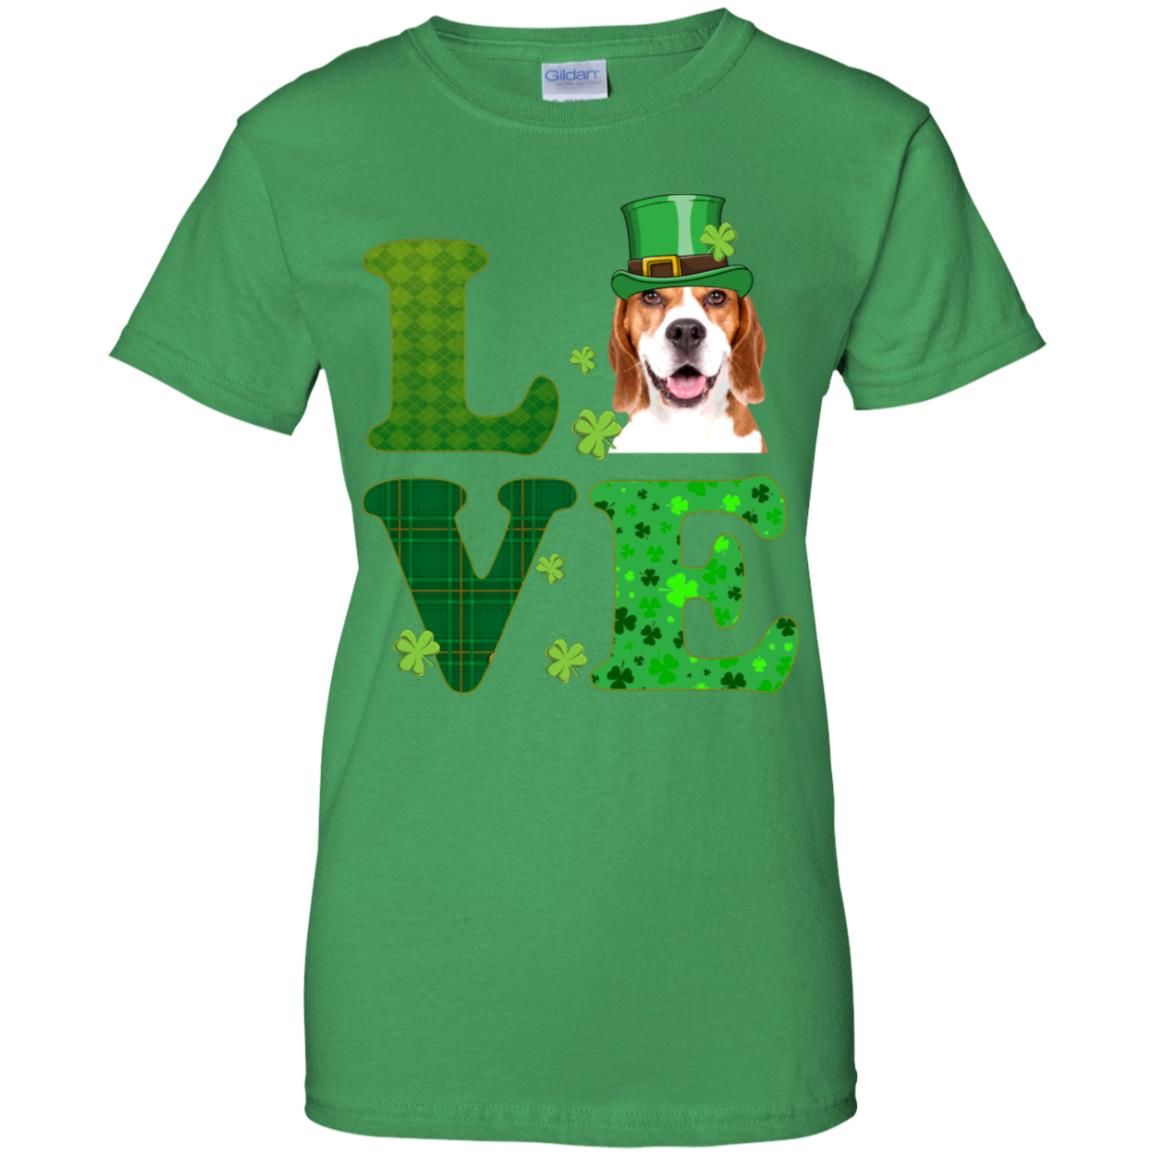 66d59b43 Awesome love beagle st. patrick's day t shirt funny dog lover gift -  99promocode